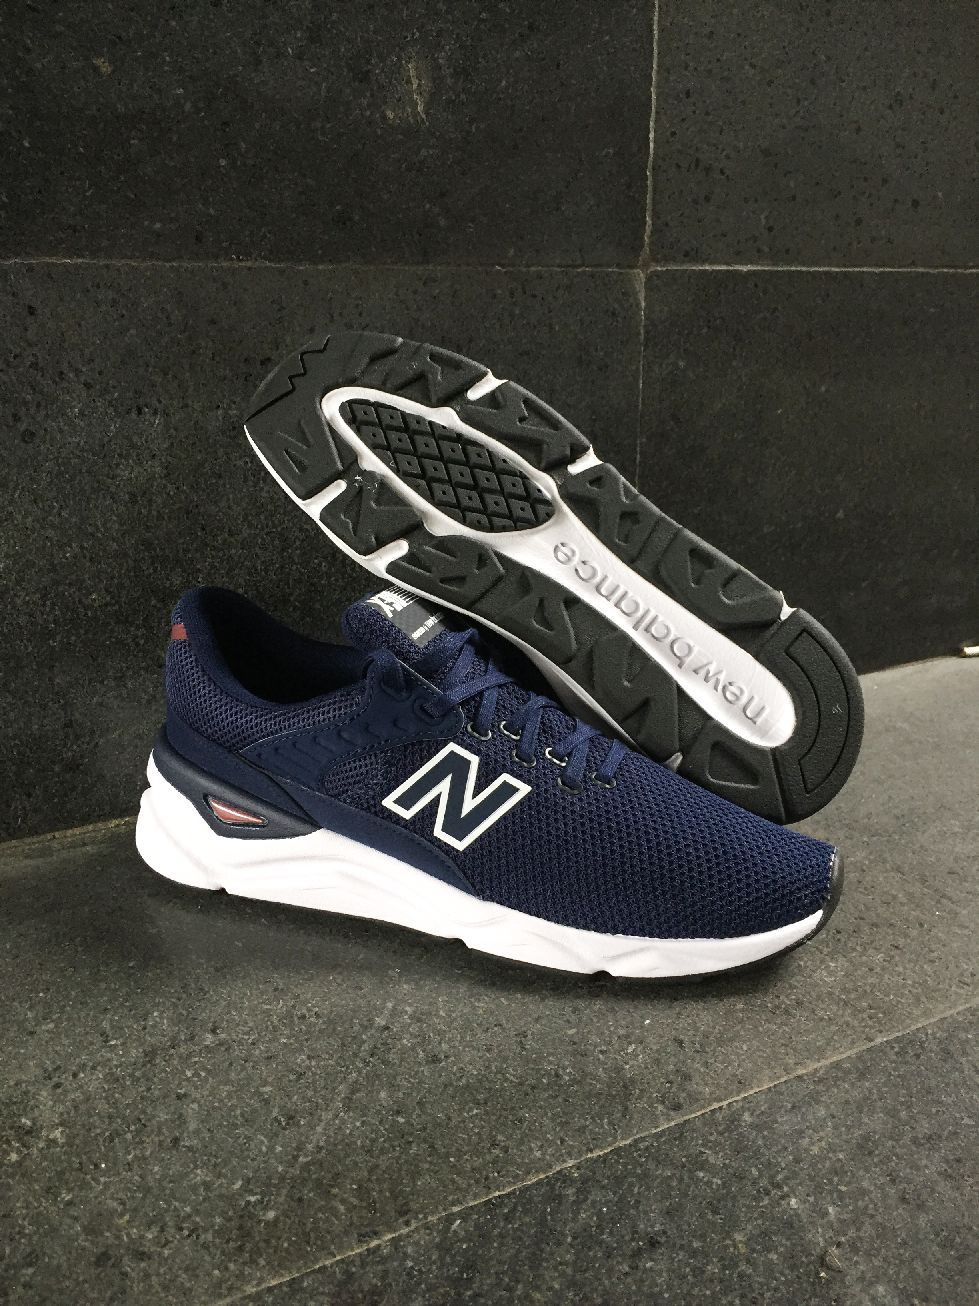 New Balance X-90 Sport shoes Sneakers Lifestyle sportswear Navy